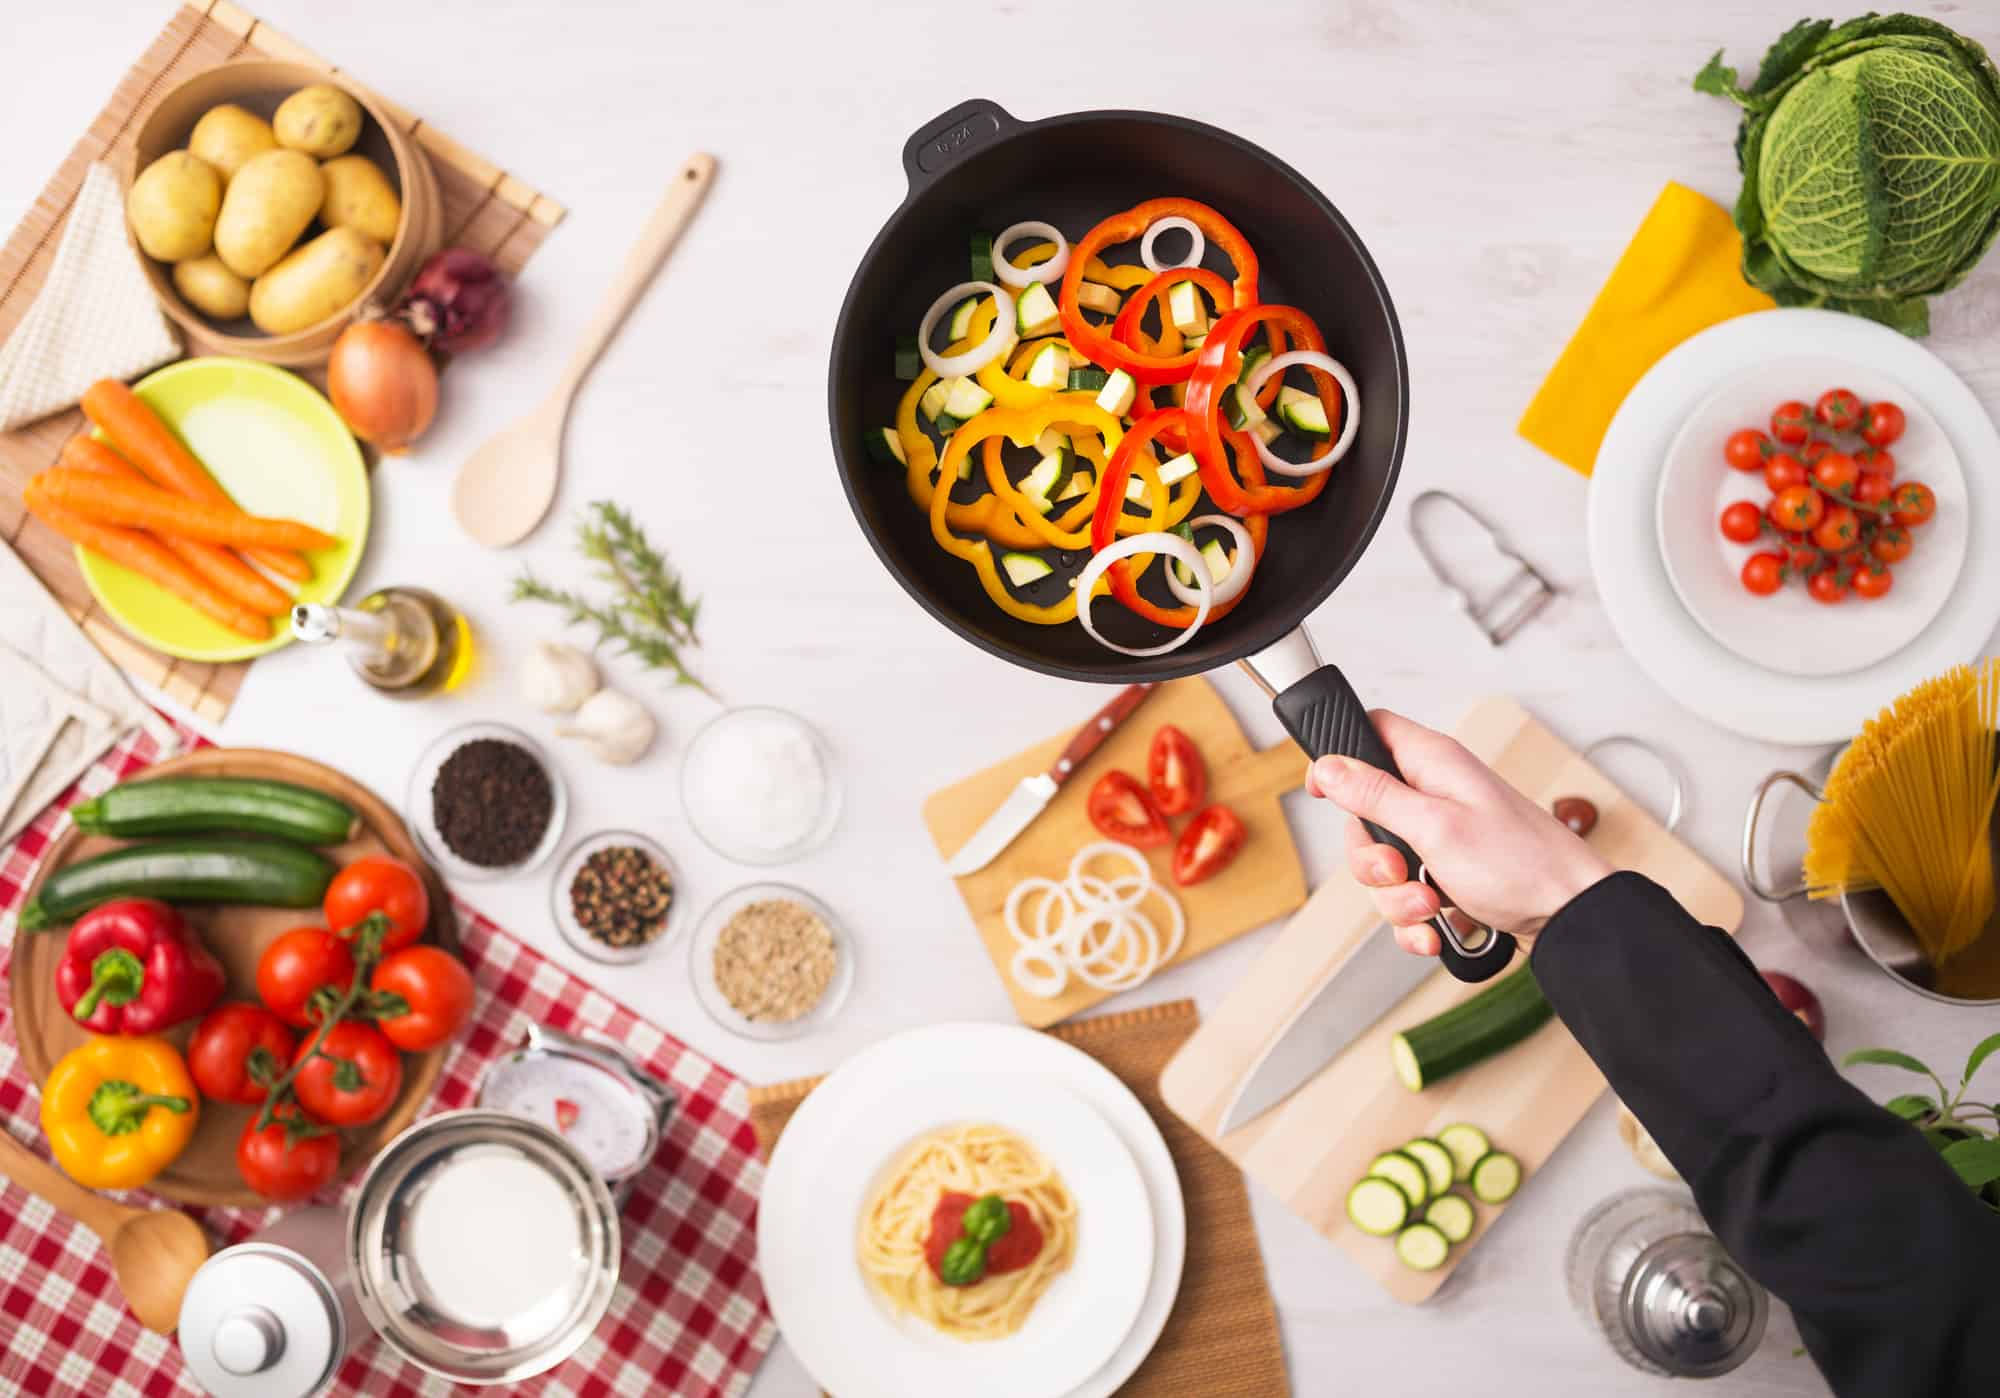 Professional cook frying fresh sliced vegetables in a nonstick pan hands close up, food ingredients and kitchenware